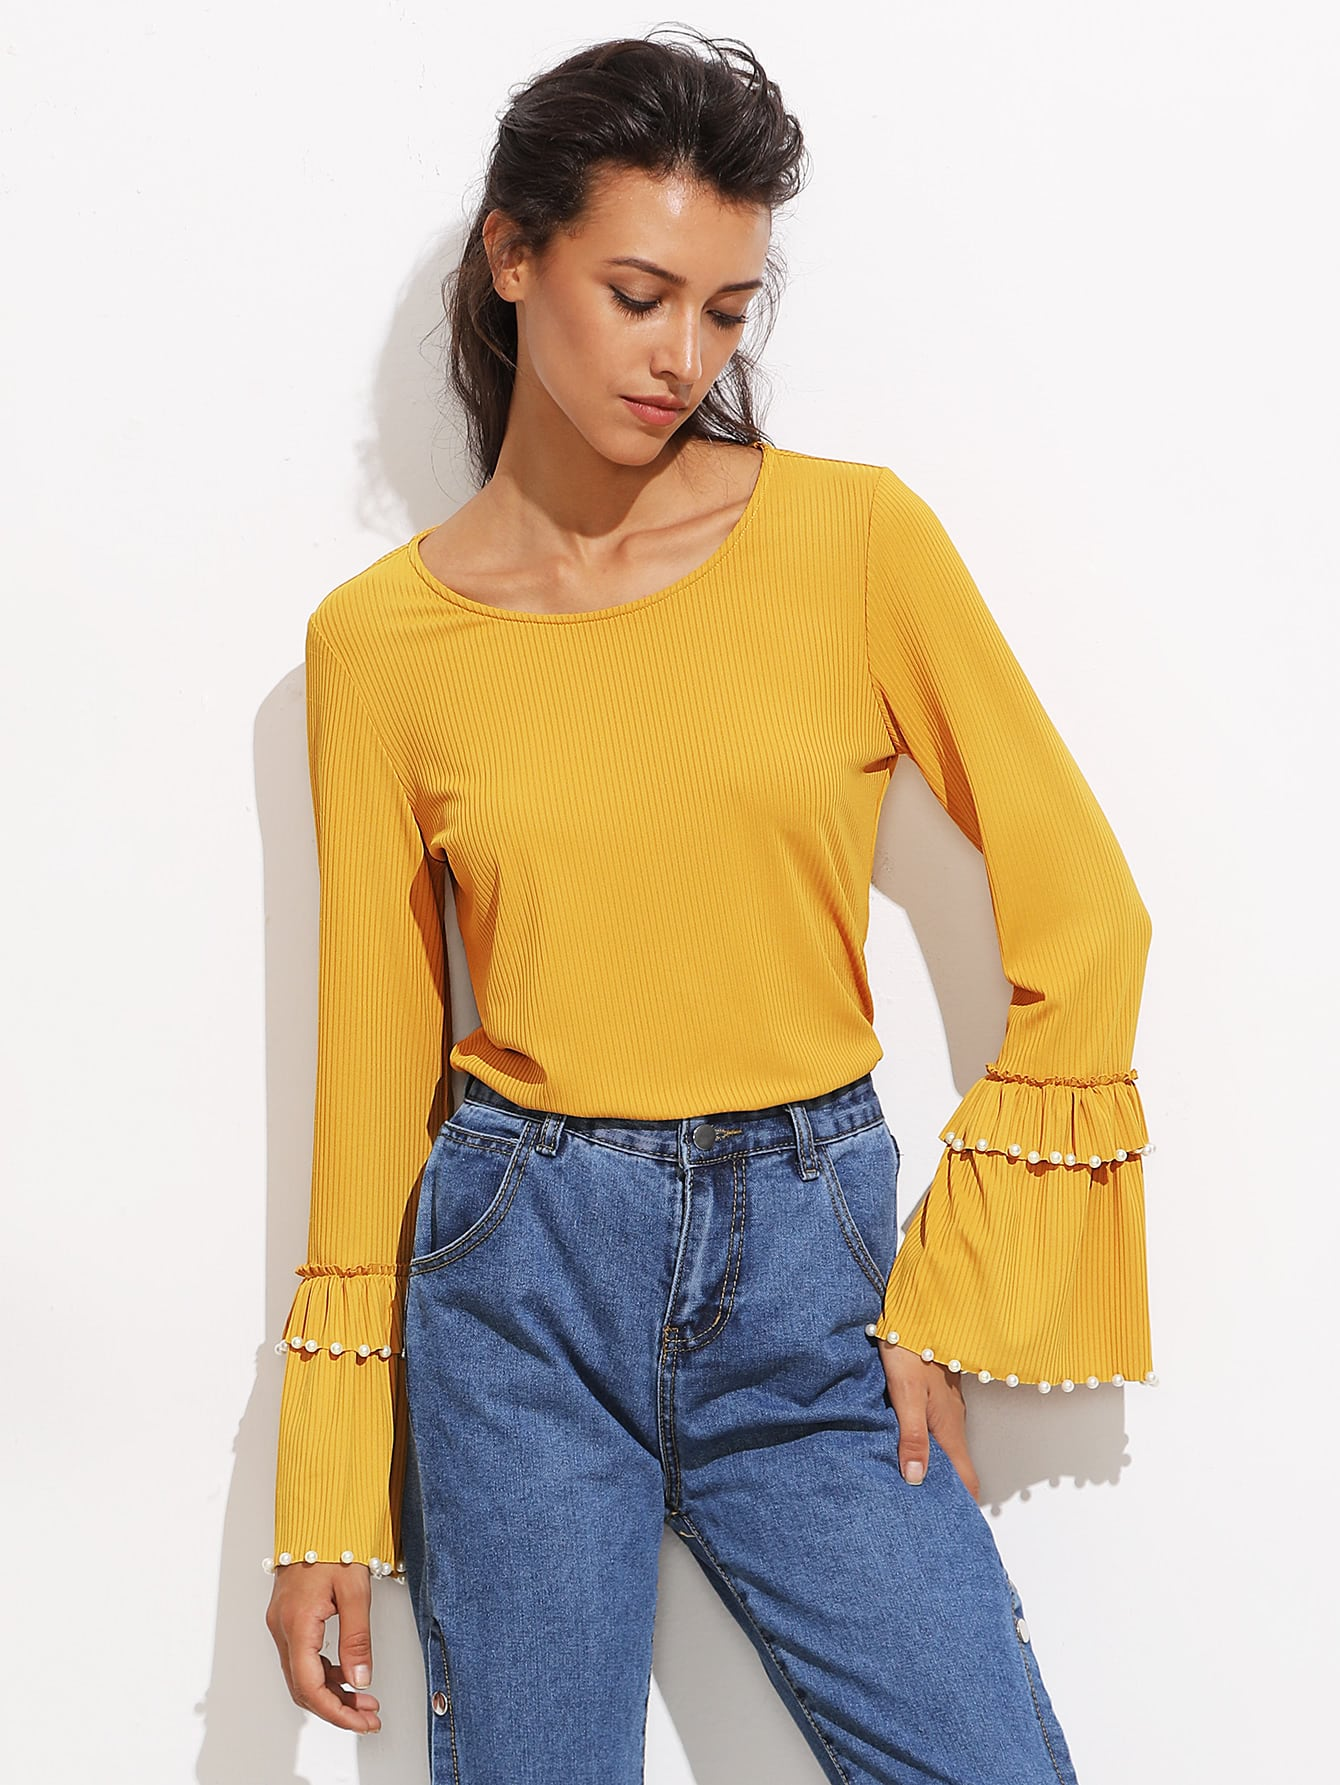 Pearl Beading Layered Bell Cuff Ribbed Top pearl beading layered sleeve top